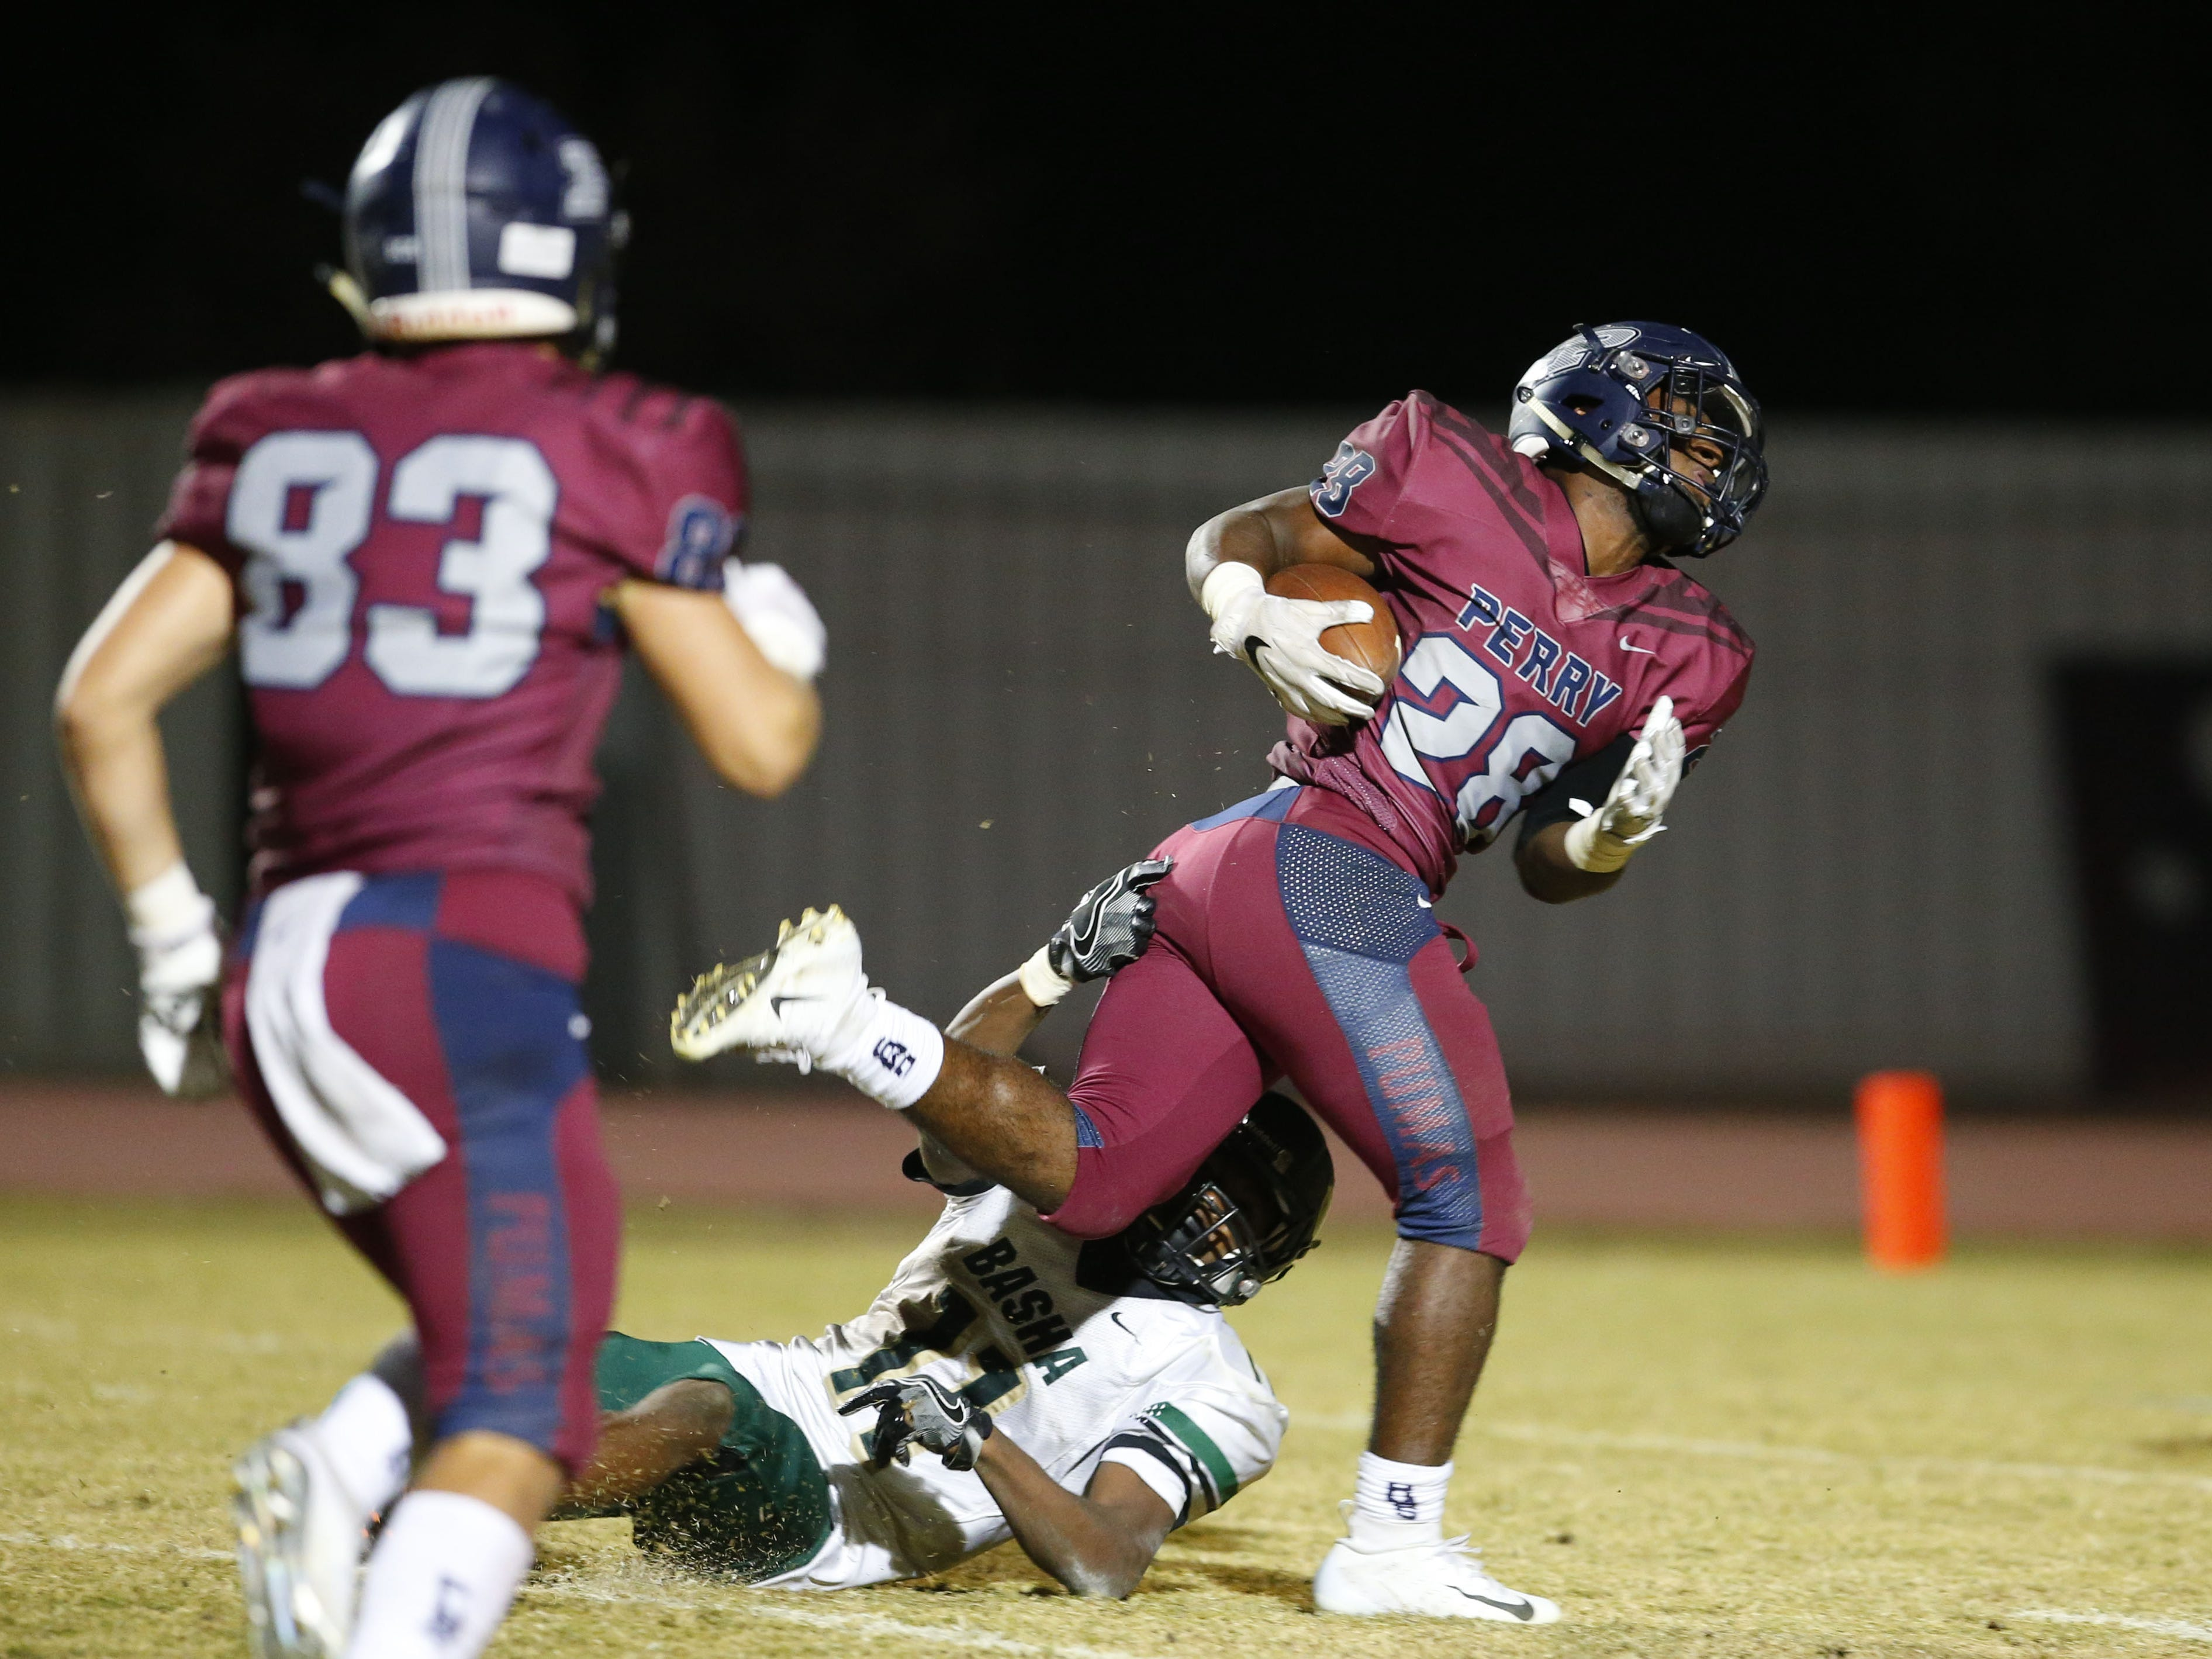 Perry running back Jalen Young (28) breaks an attempted  tackle by Bashas Andrell Barney (11) to score a touchdown during a football game at Perry High School on Nov. 2. #azhsfb